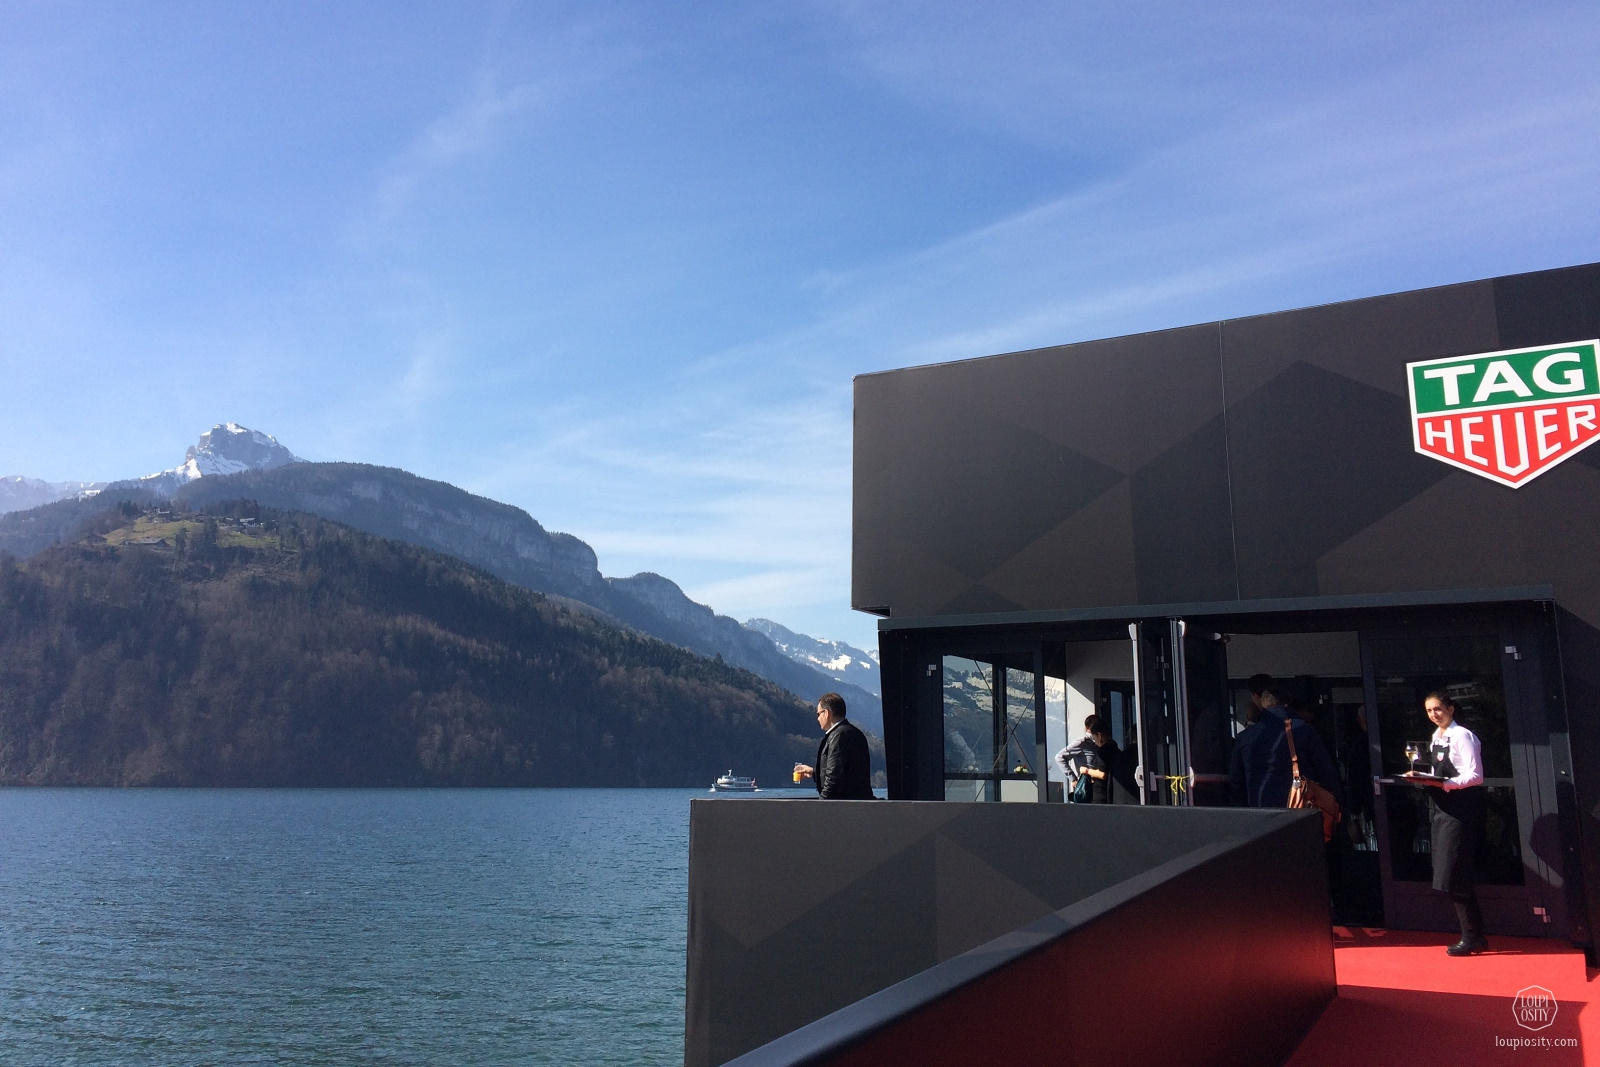 View from Brunnen, at the Lake Lucerne and the TAG Heuer booth